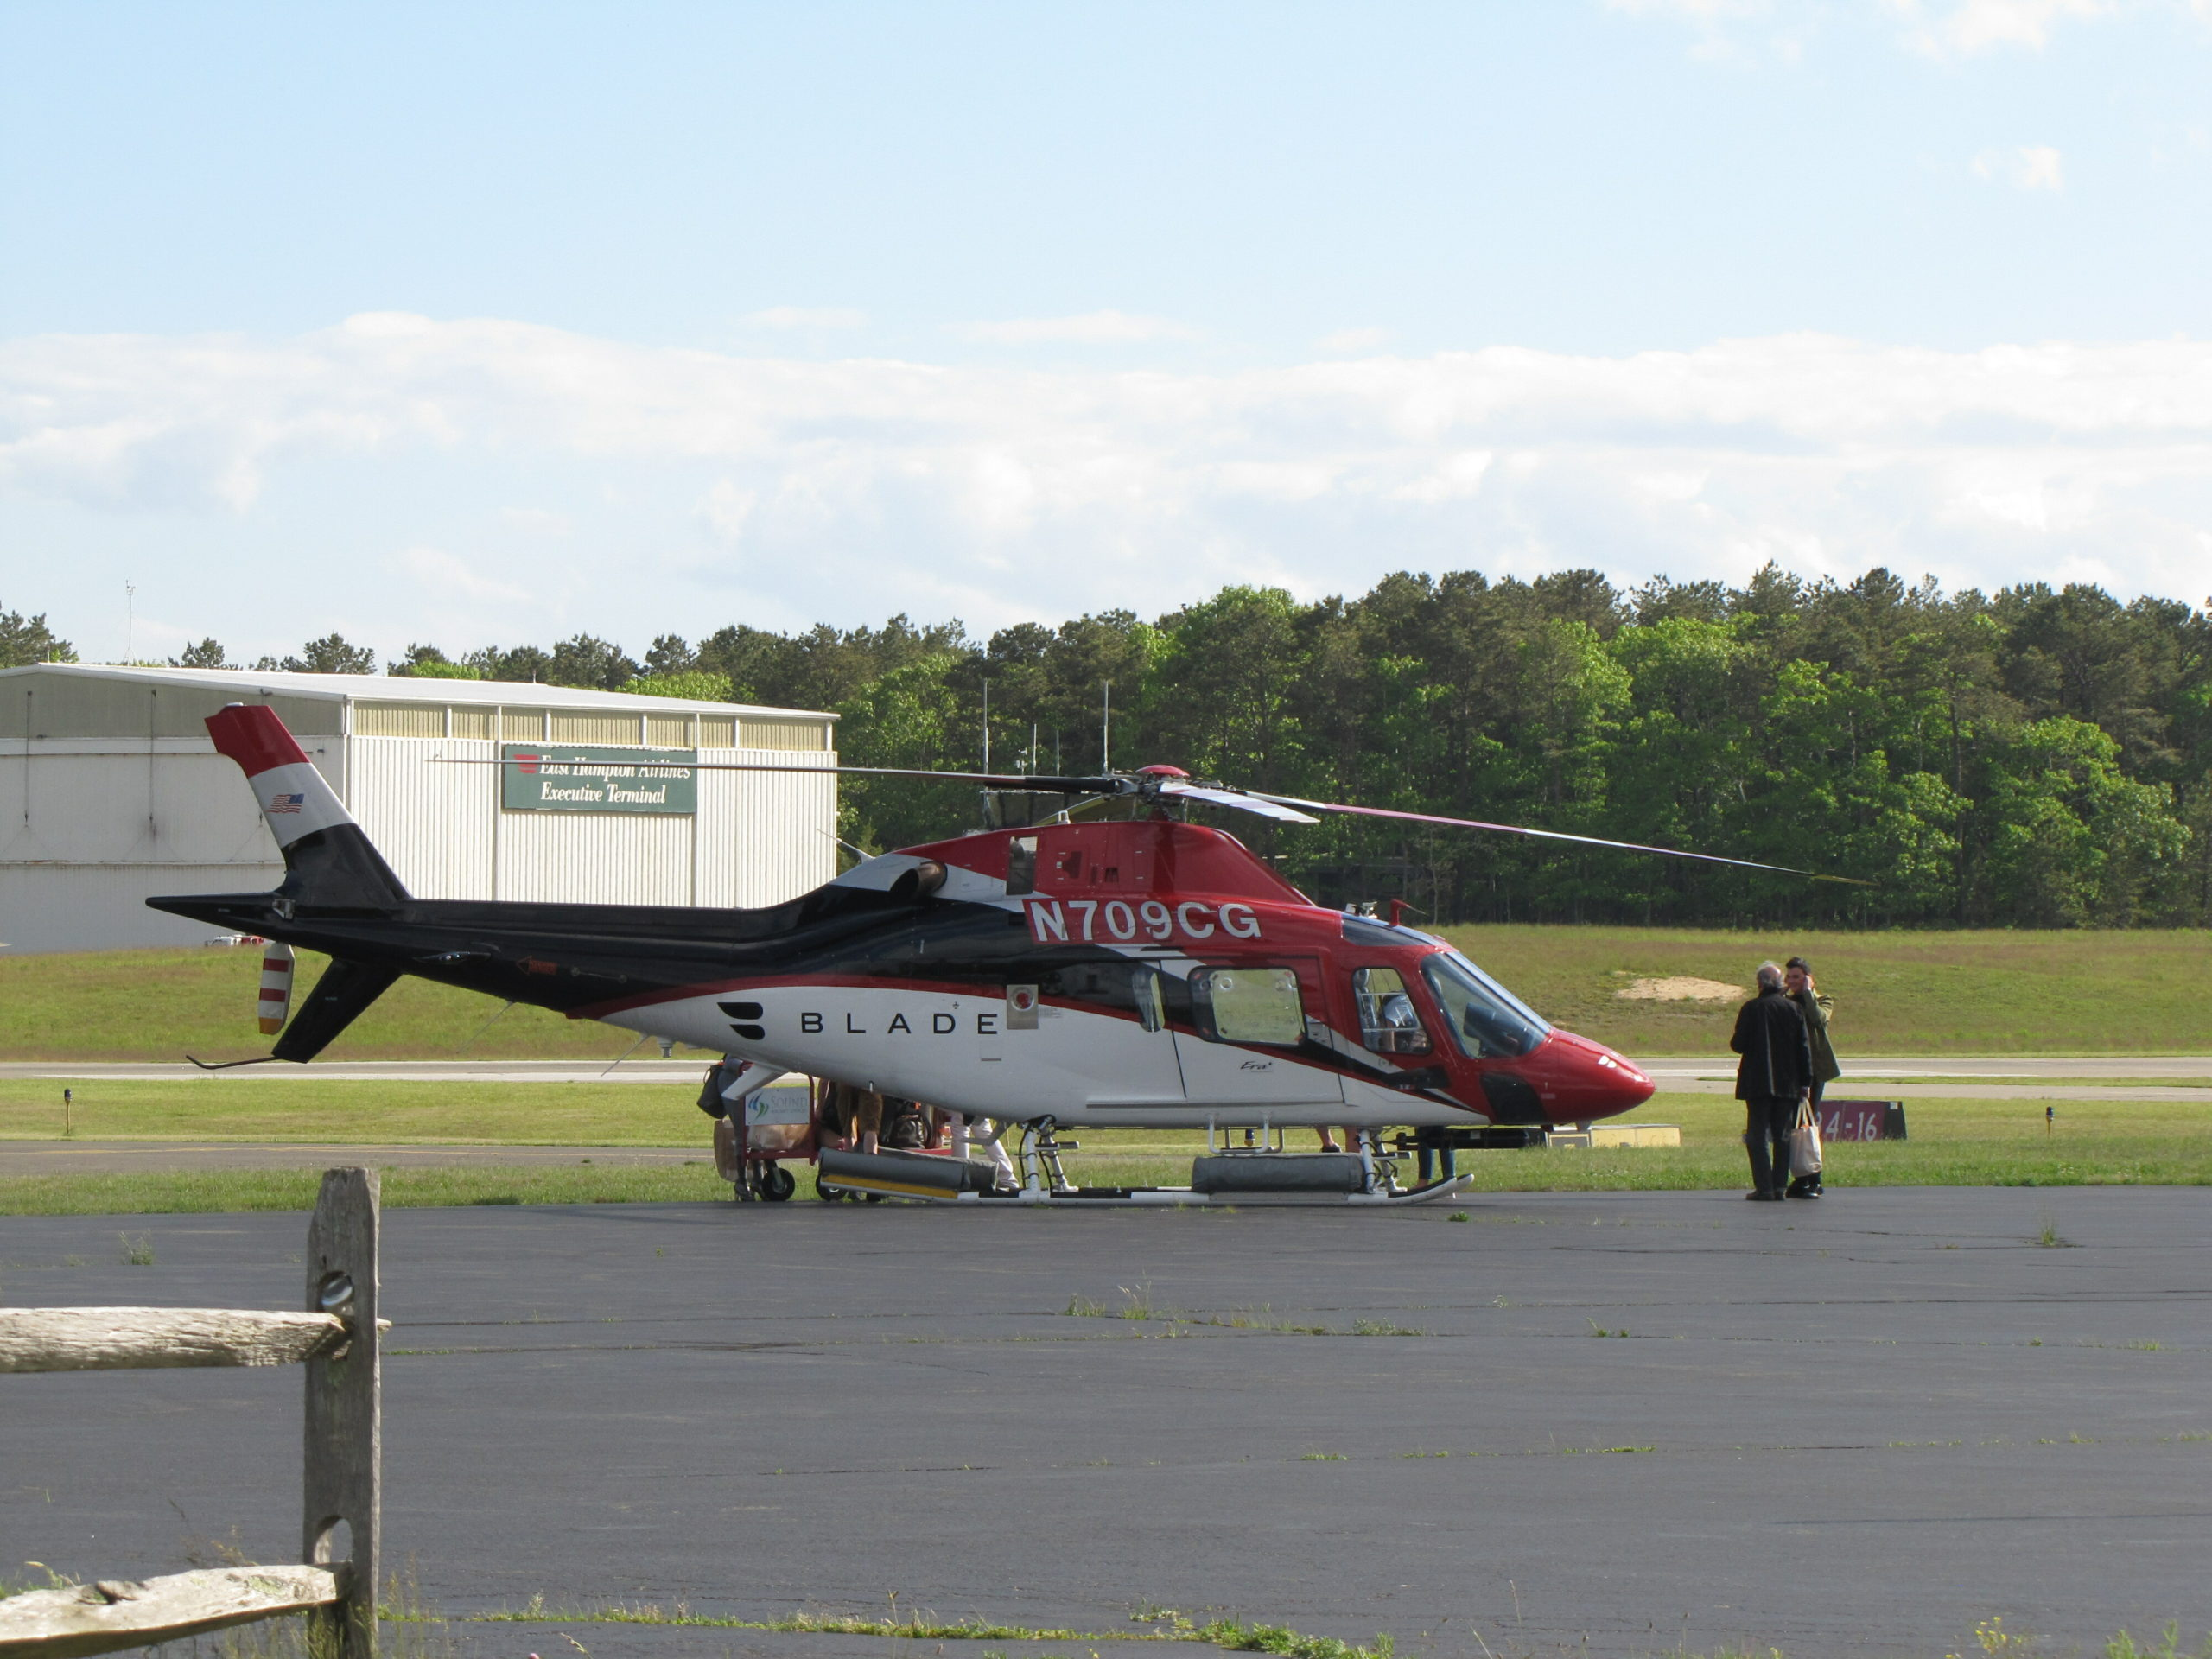 Helicopter traffic at East Hampton Airport was down 90 percent this past weekend and the commercial flight booking company Blade said it is transitioning away from helicopters both in response to the coronavirus epidemic and for the long term, to lessen noise impacts on residents.